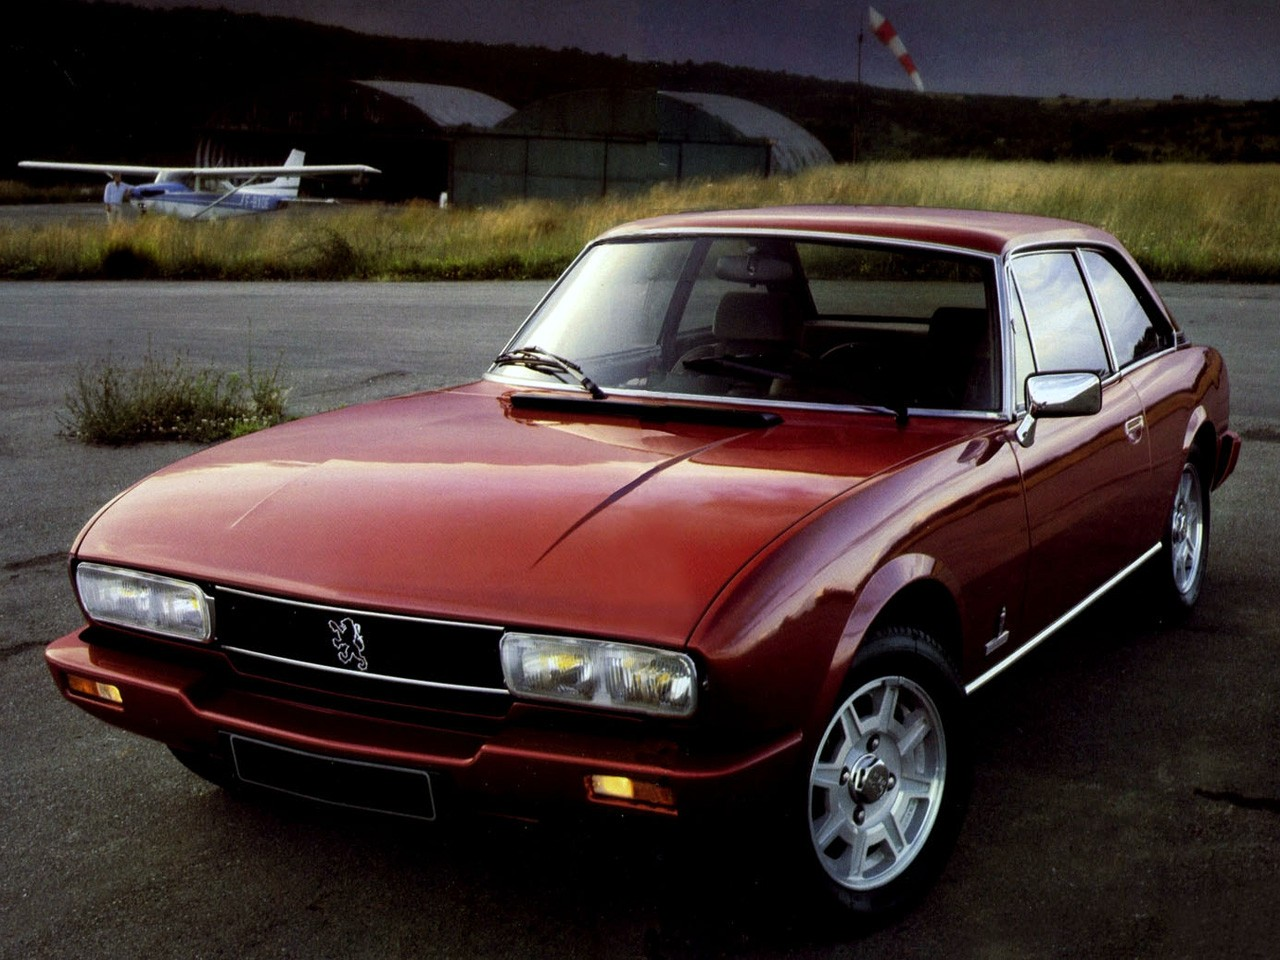 peugeot 504 coupe specs photos 1974 1975 1976 1977 1978 1979 1980 1981 1982. Black Bedroom Furniture Sets. Home Design Ideas